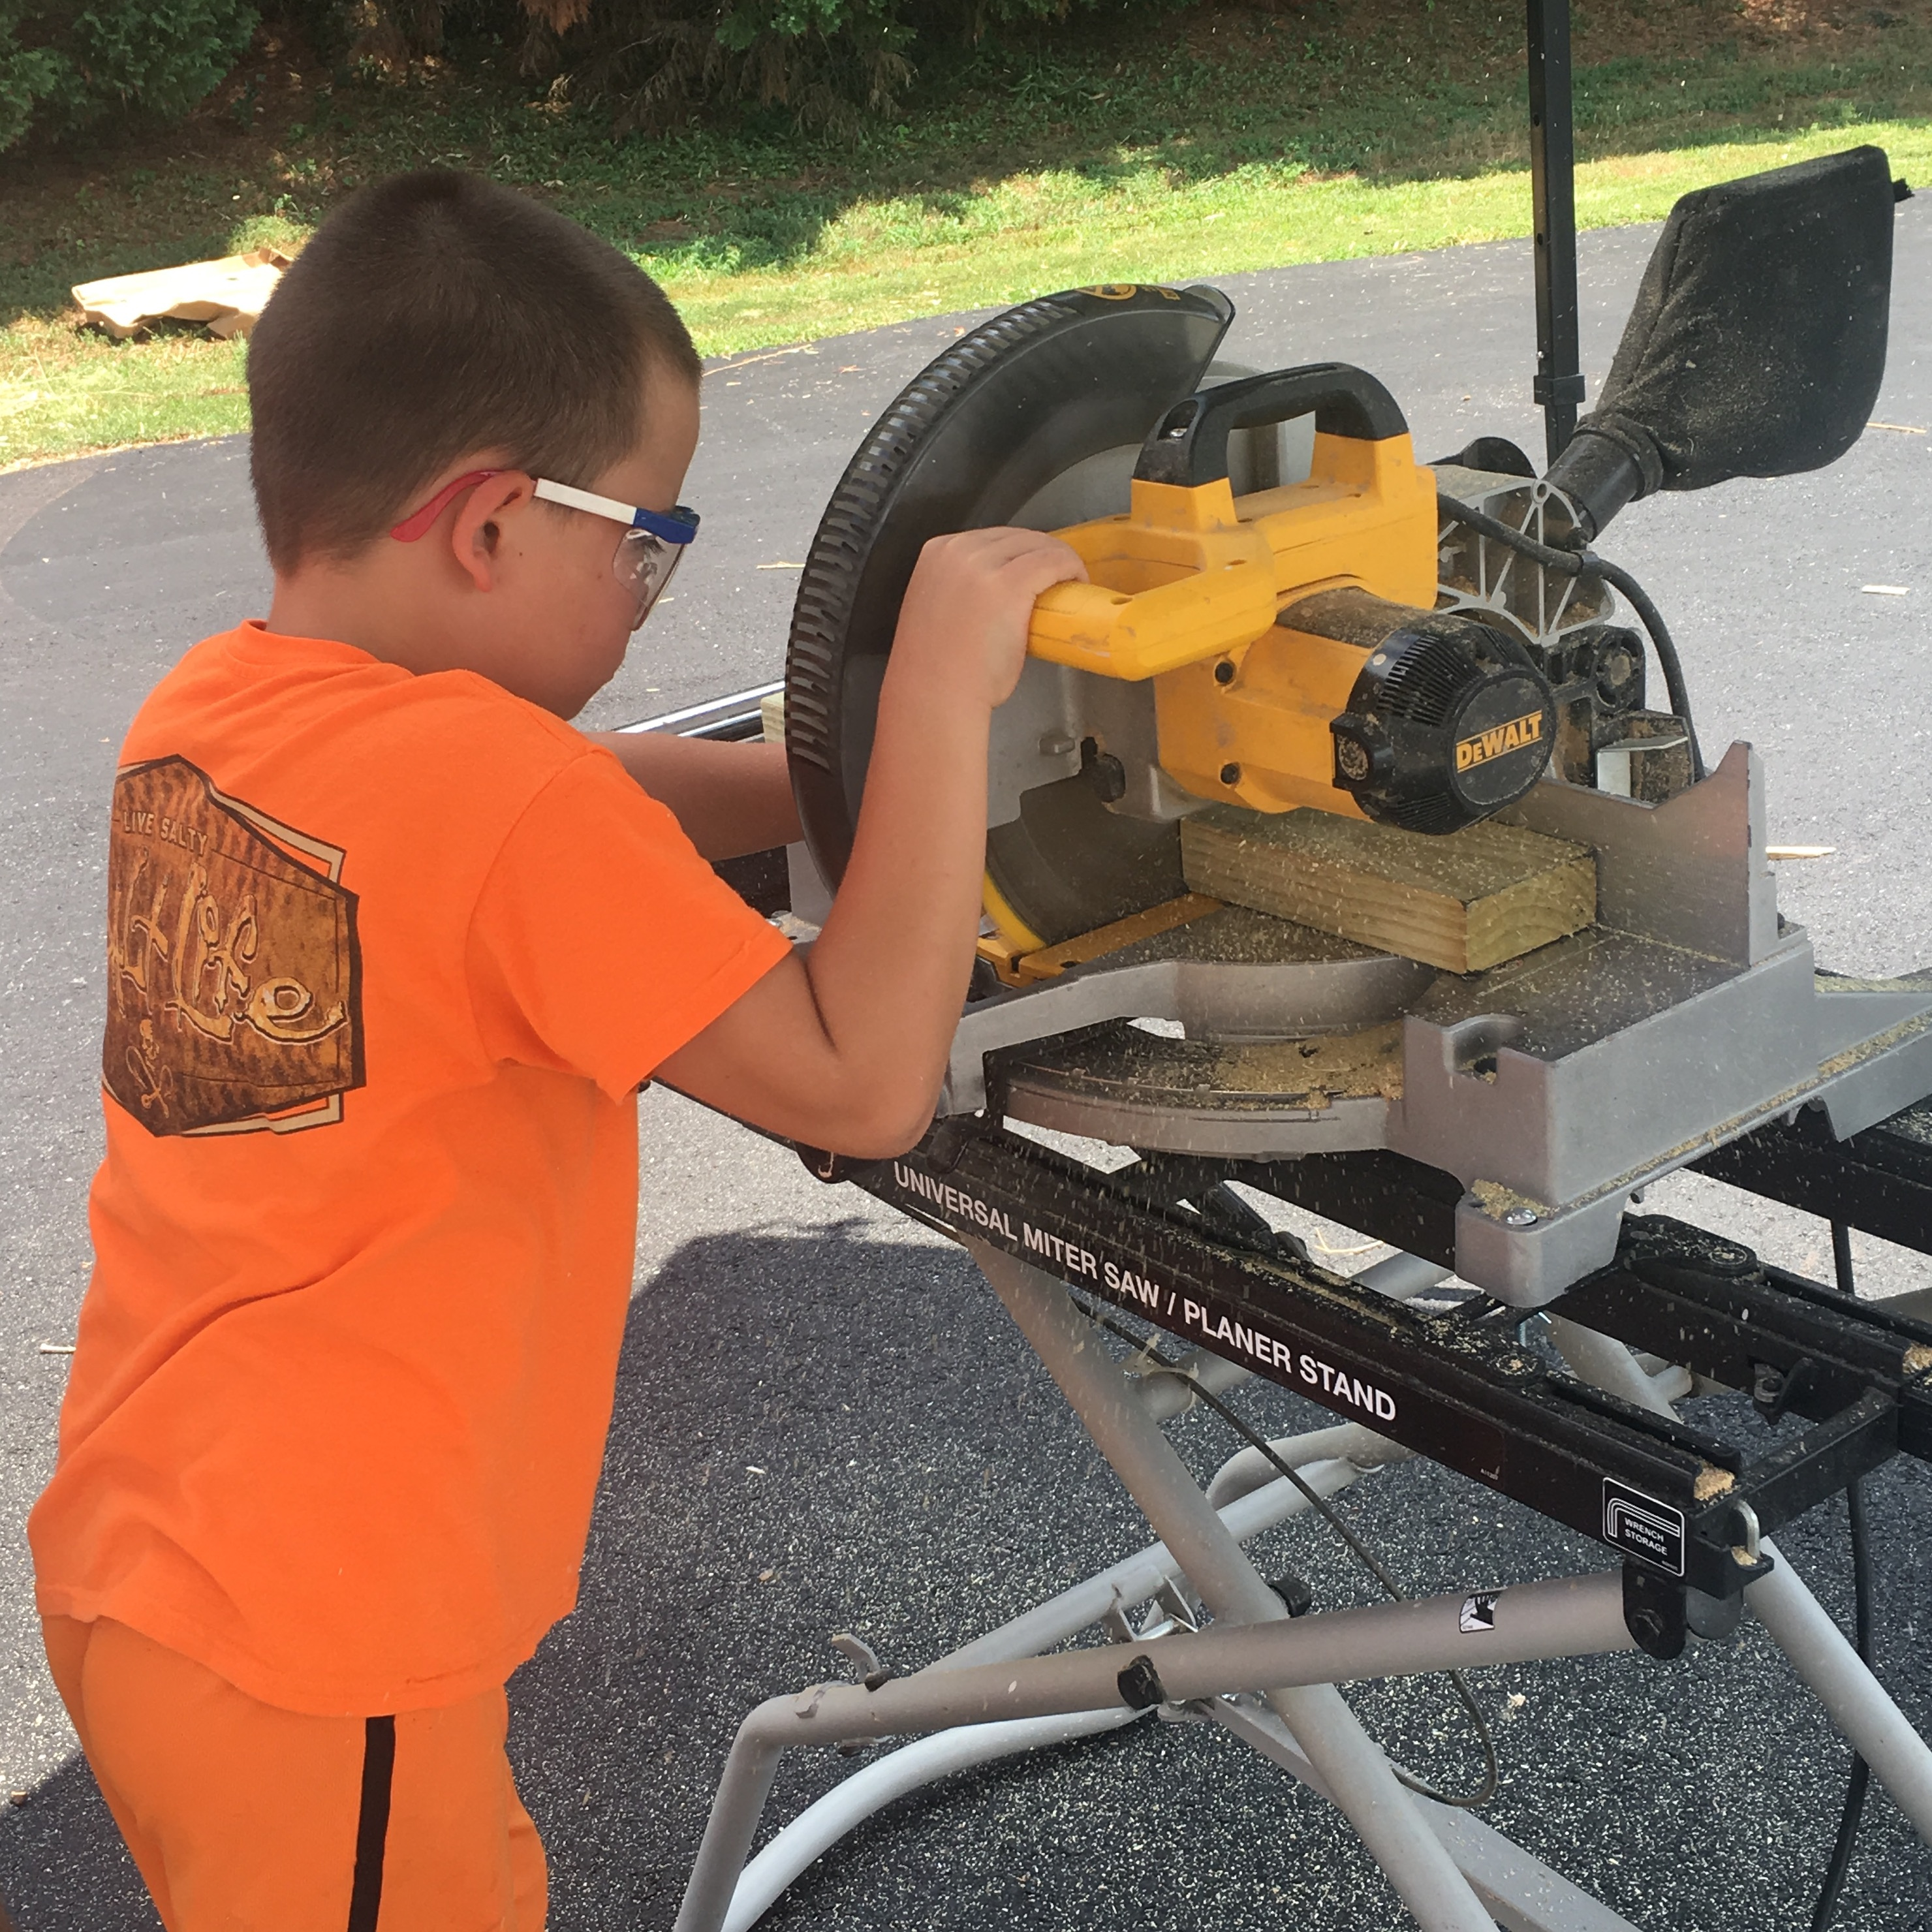 A young boy at Albemarle County Public Schools in an orange shirt and shorts uses a miter saw